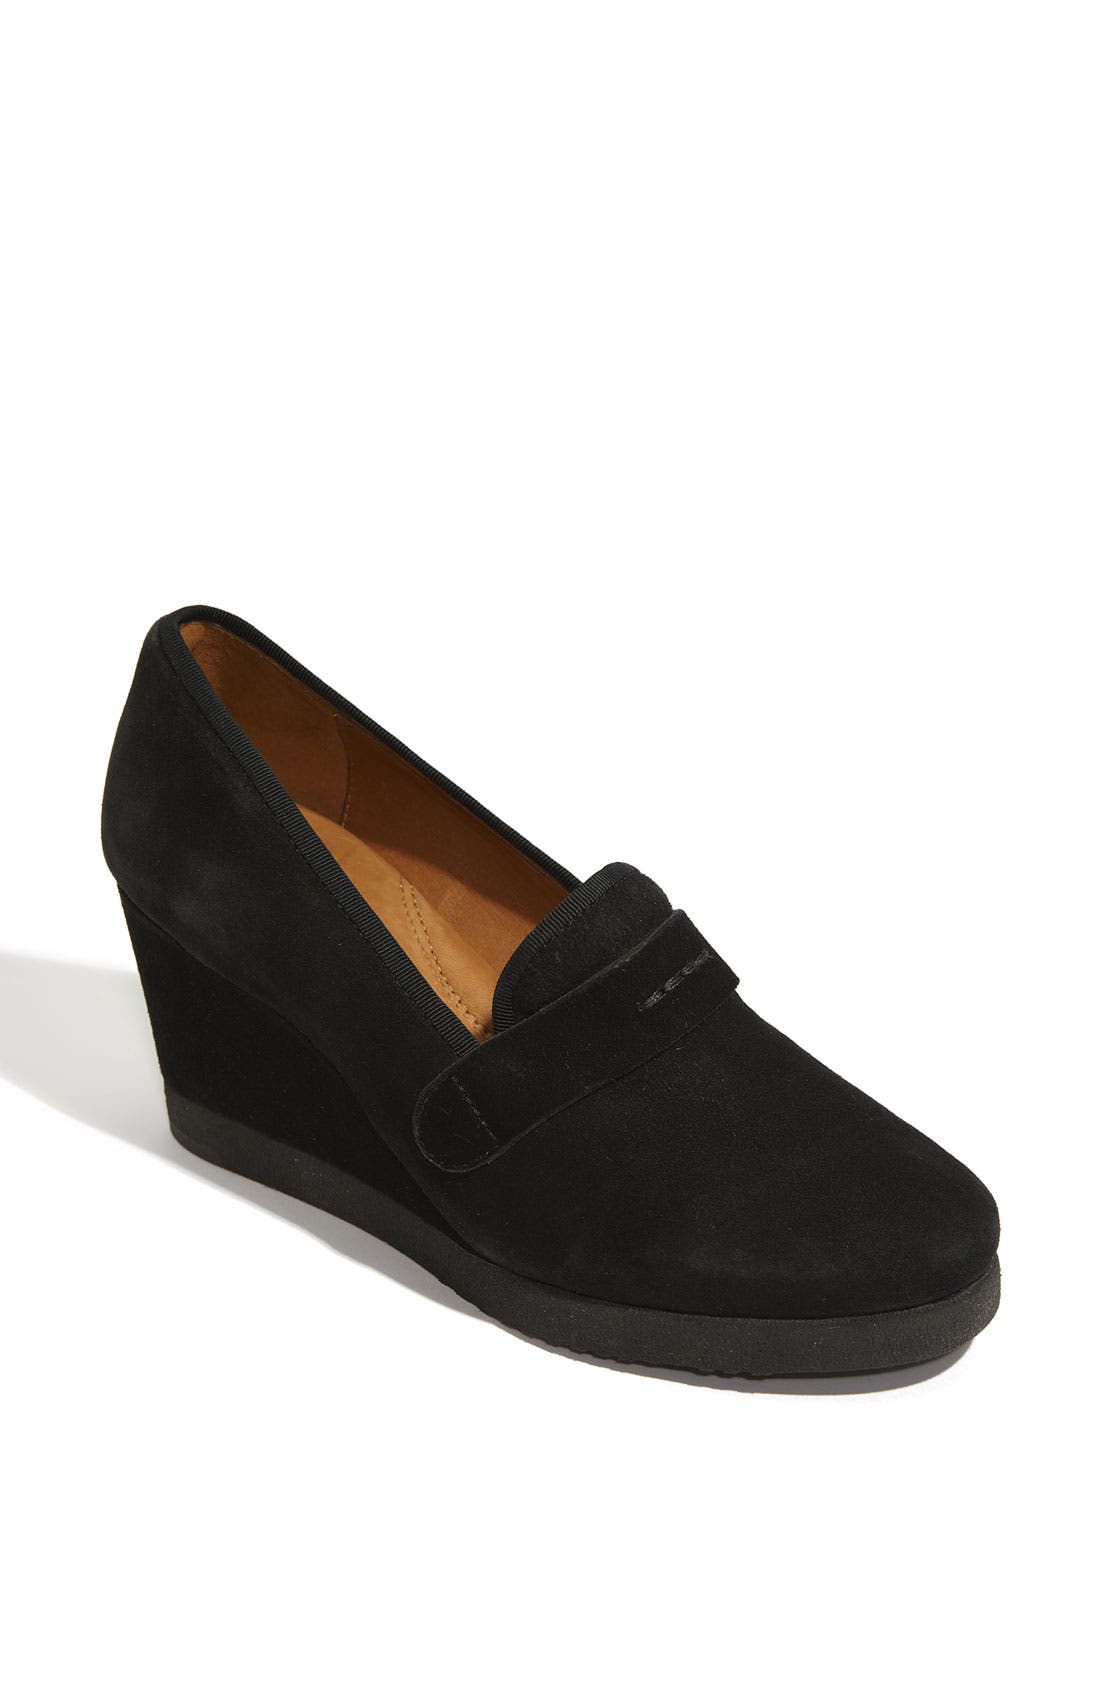 Alternate Image 1 Selected - Gentle Souls 'Up at Dawn' Loafer Pump